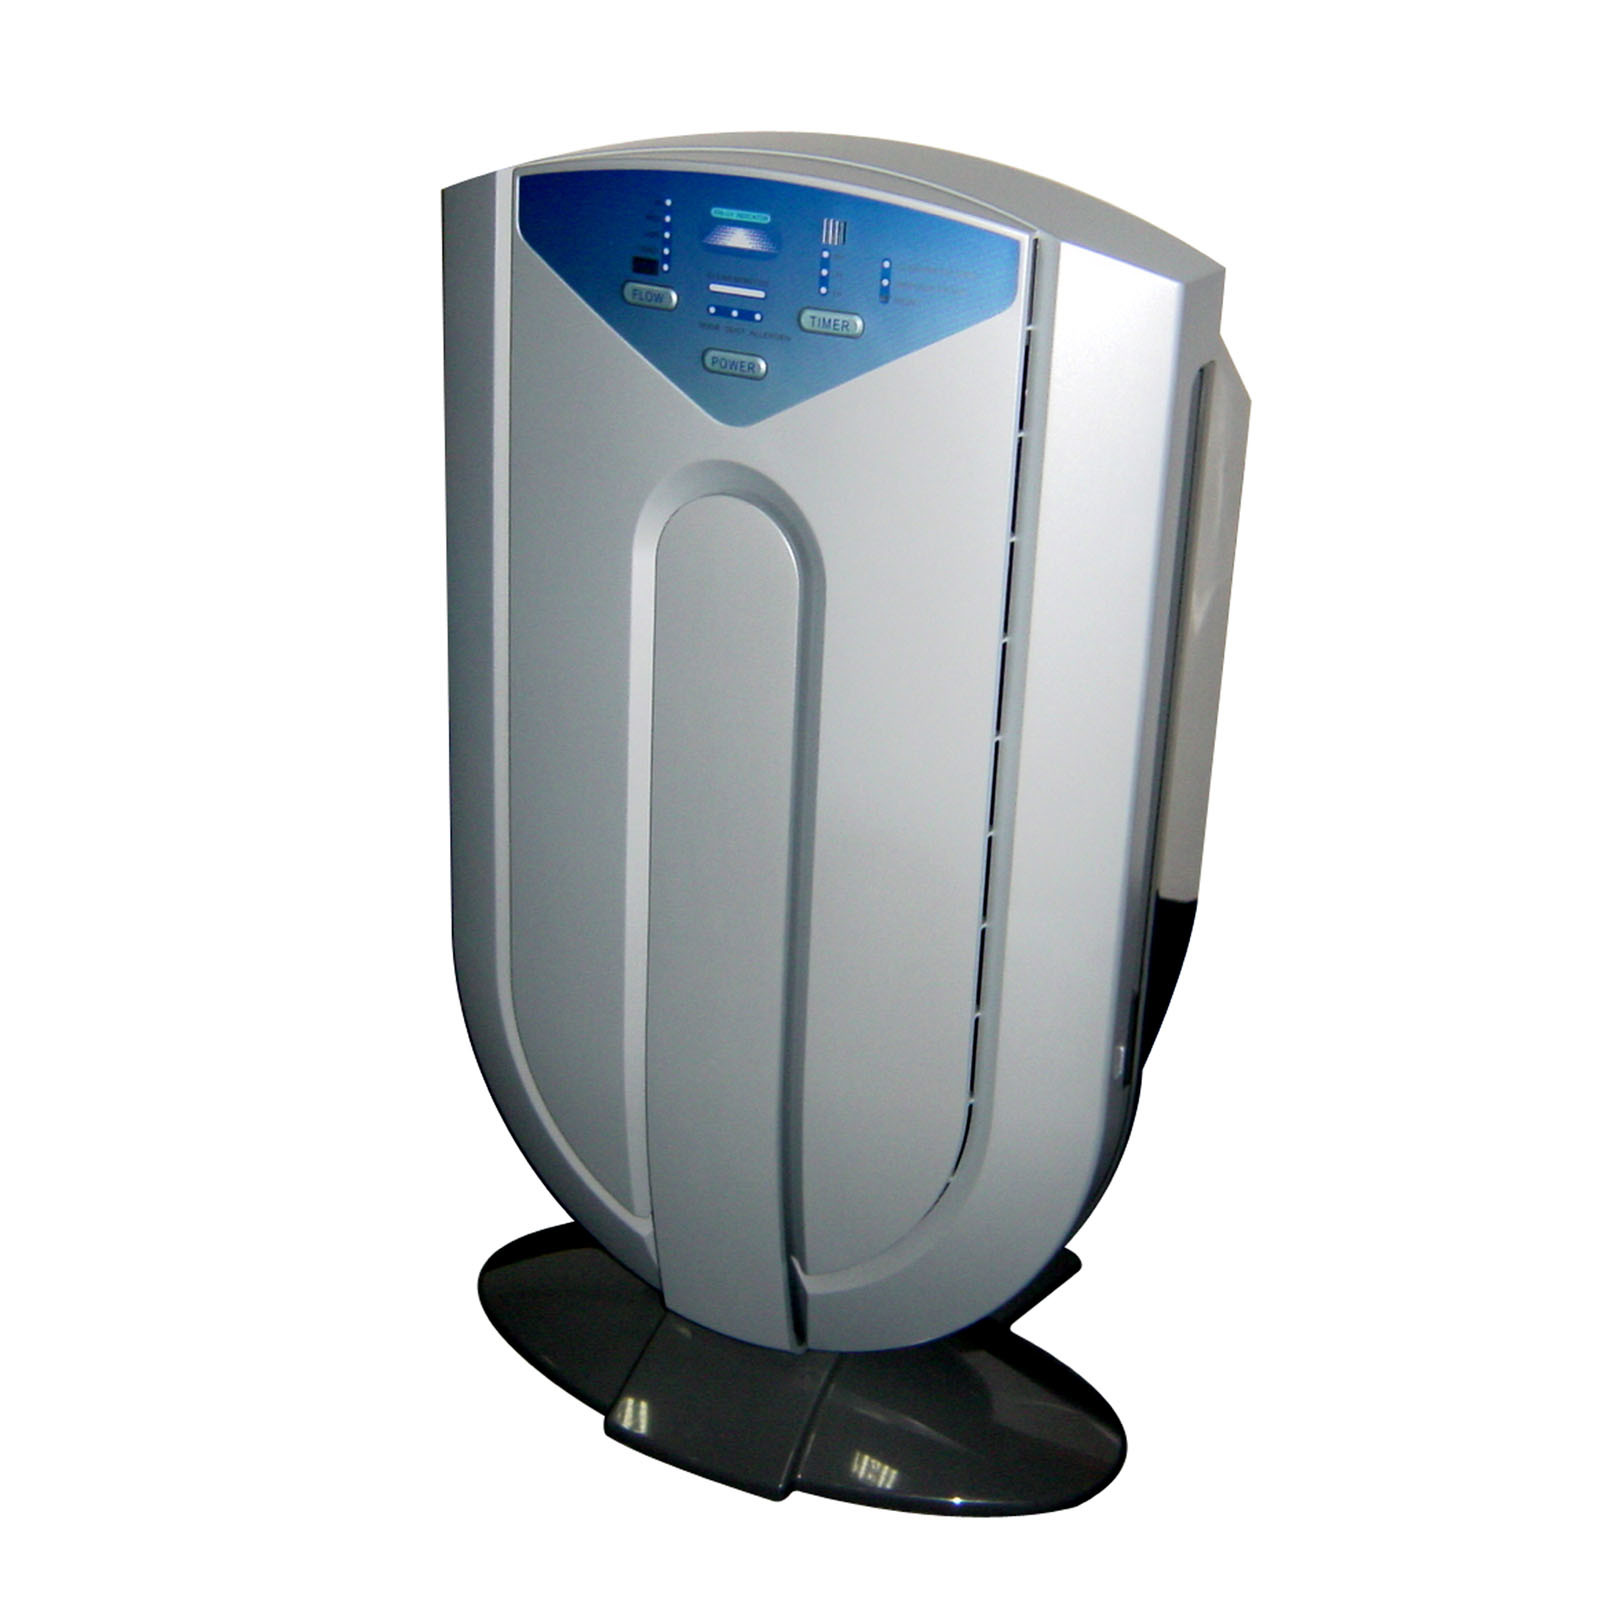 China Ionic Air Purifier (OT AP3800/3800 1) China Air Purifier #143C6D